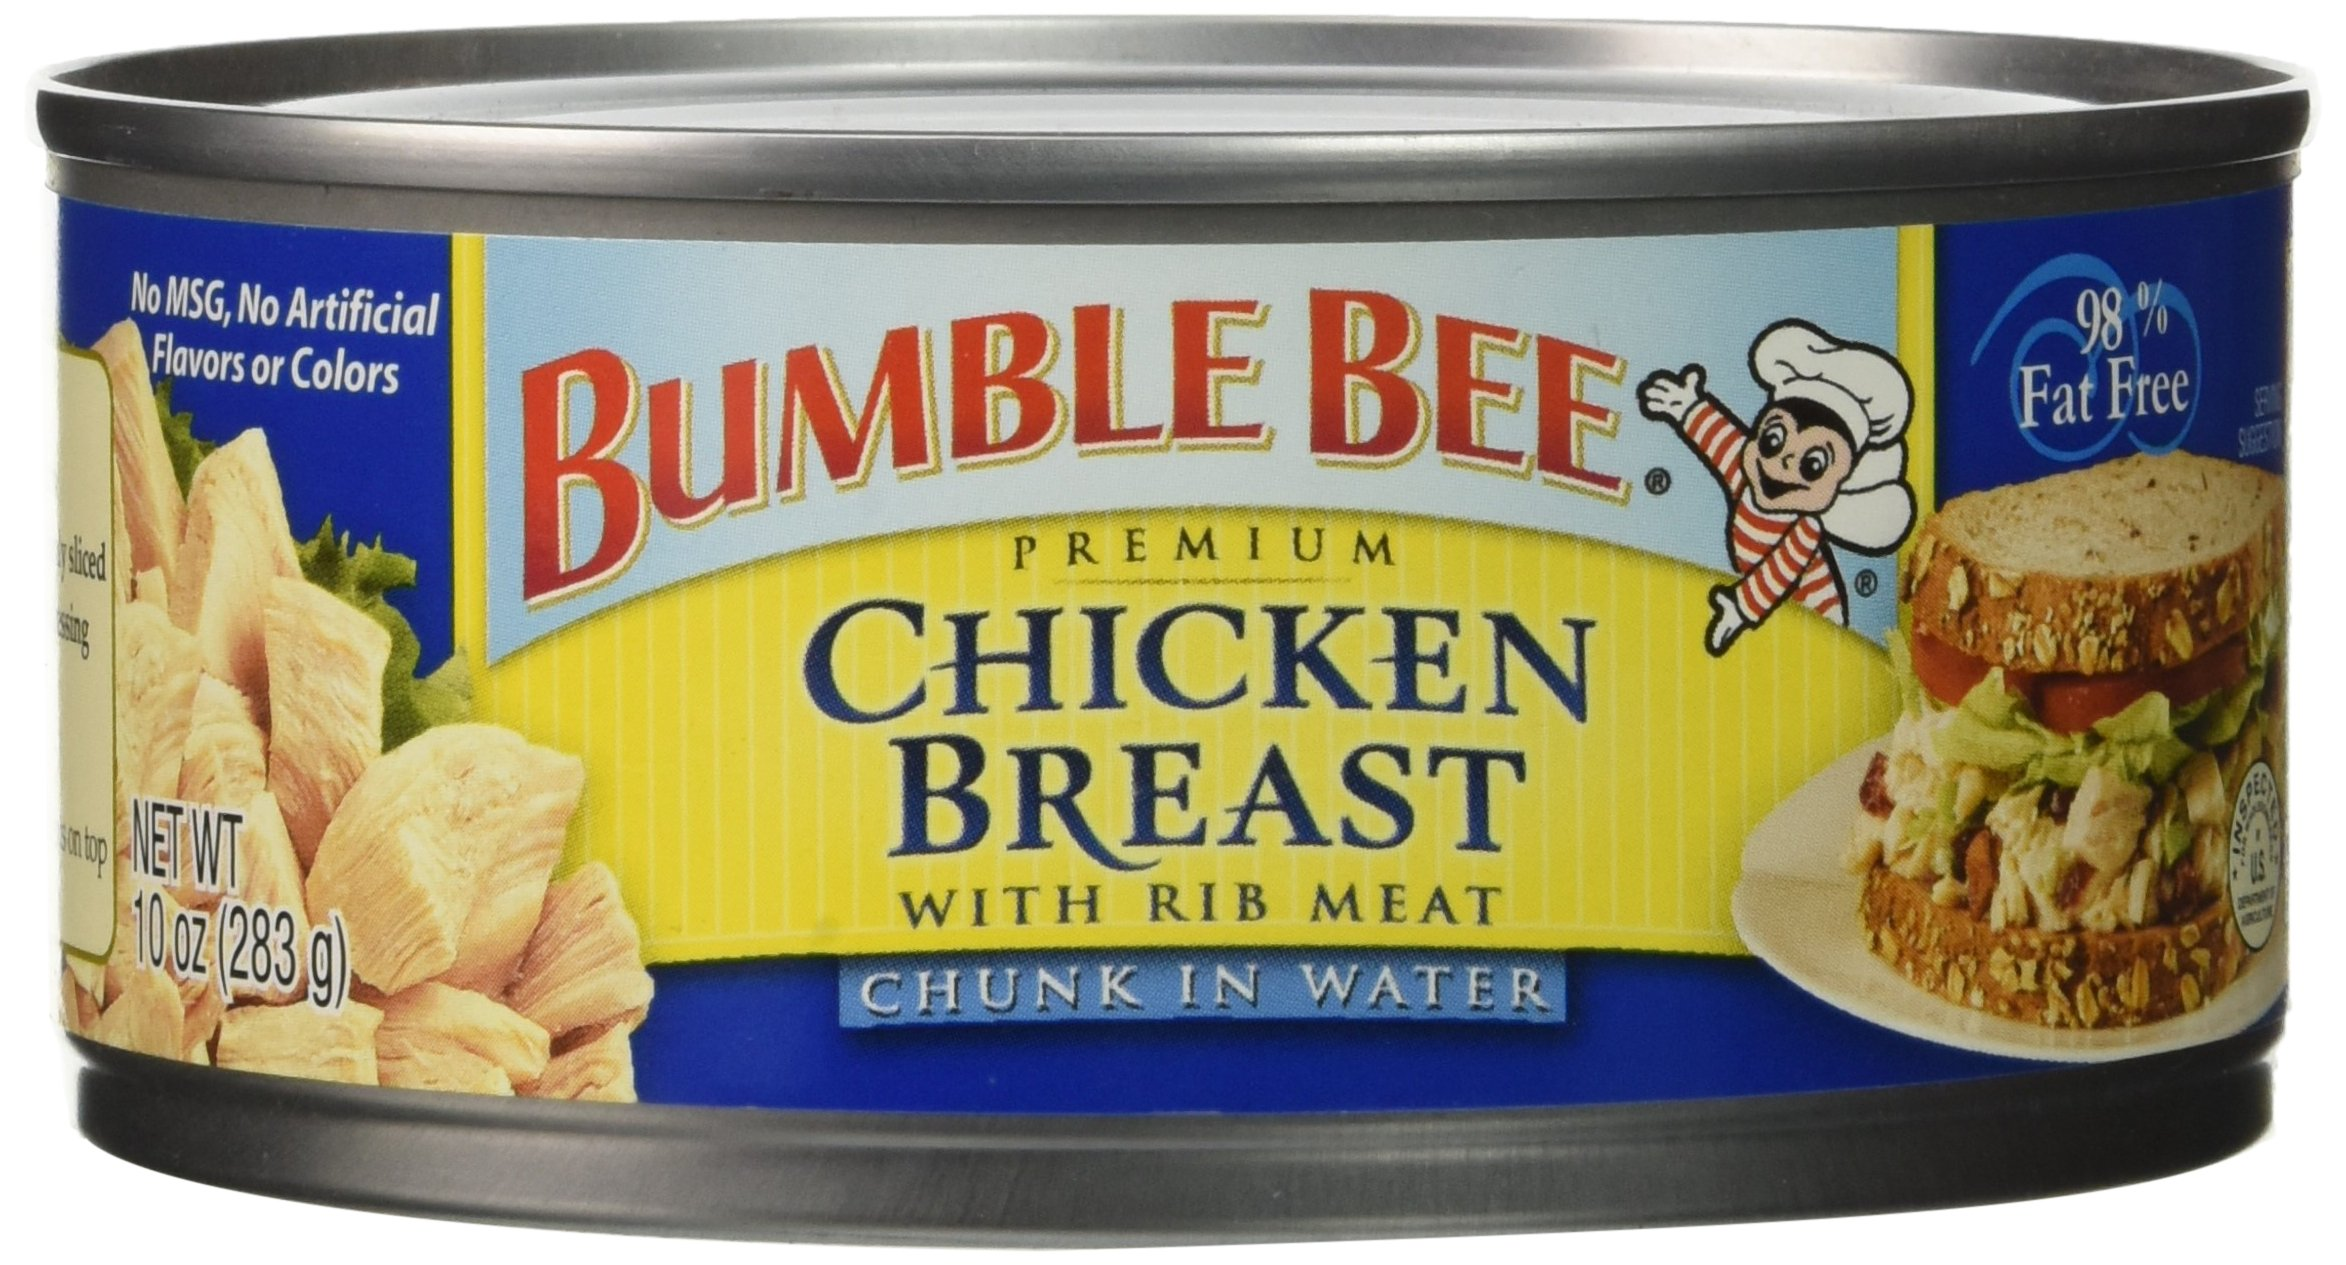 Bumble Bee Premium Chicken Breast in Water, 10 Ounce